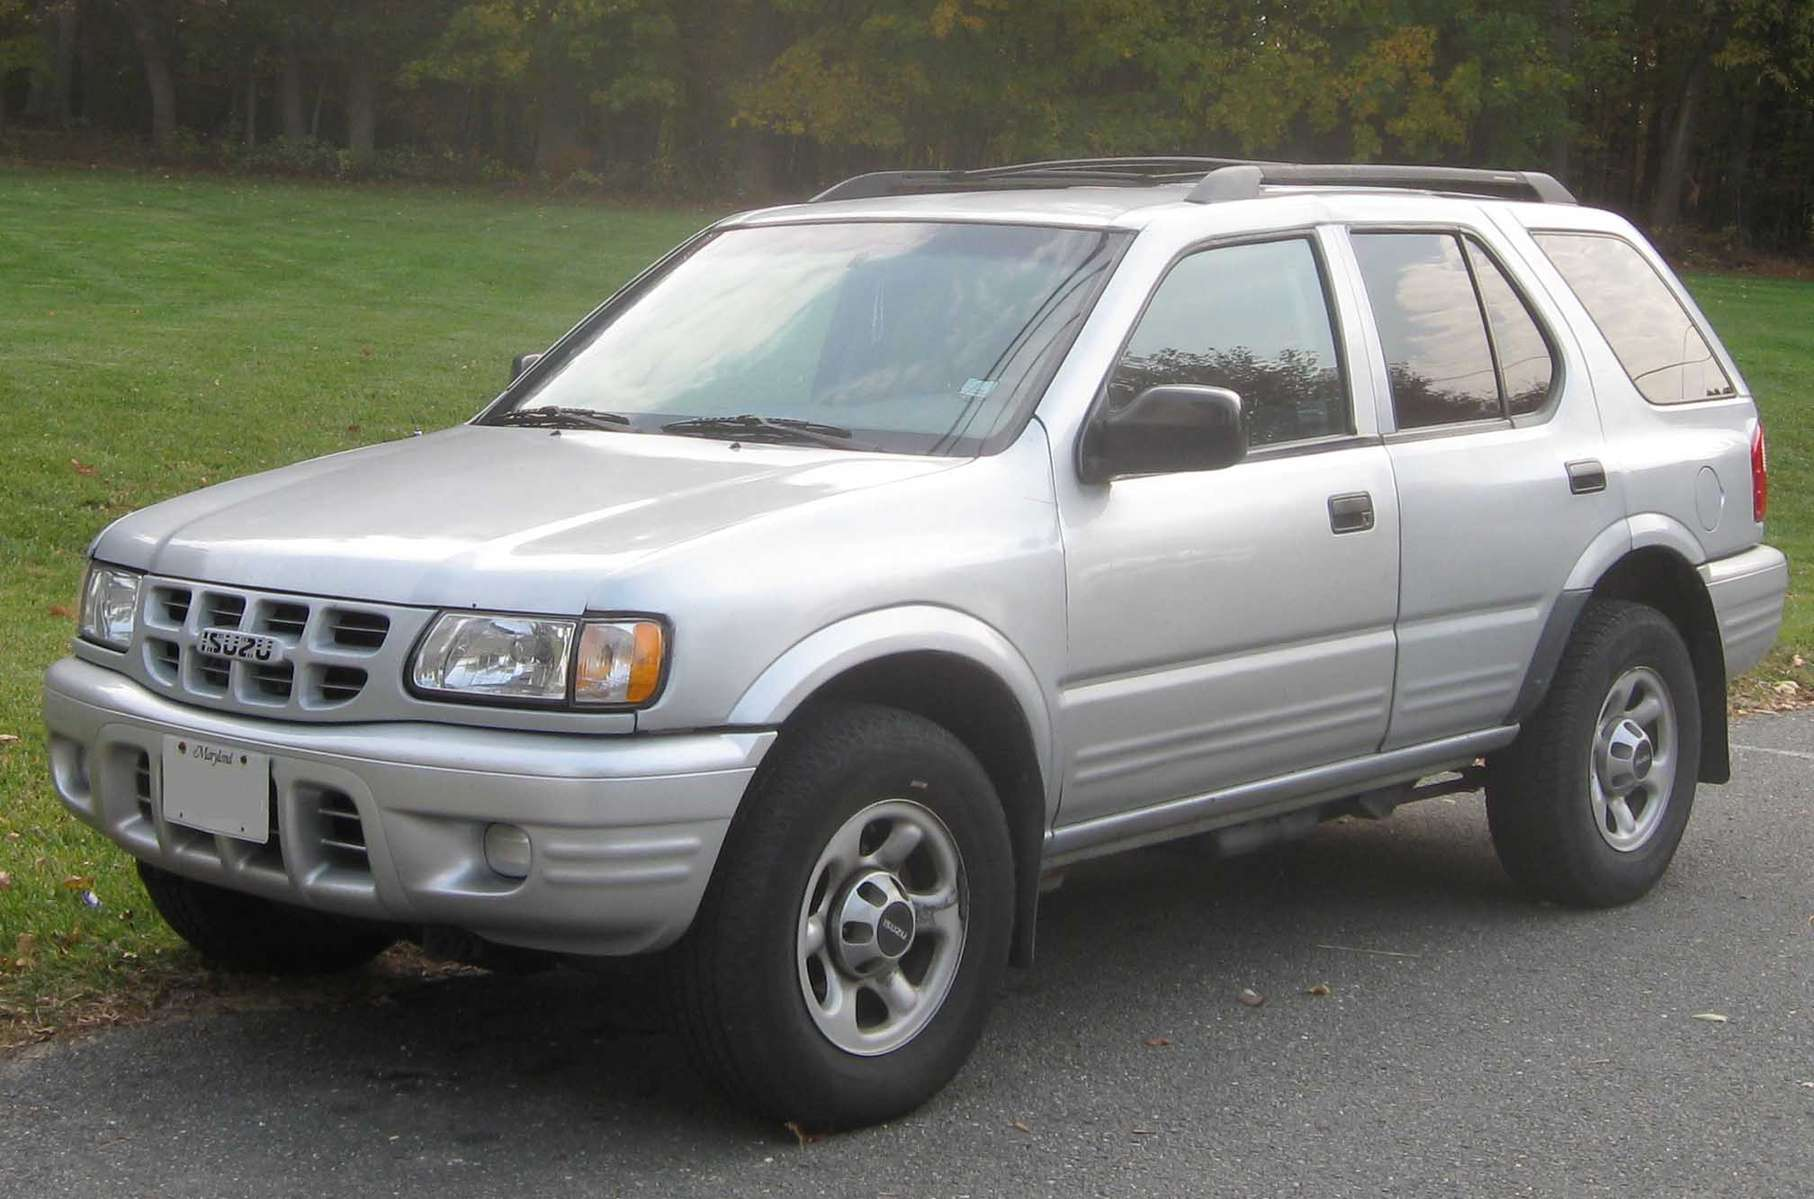 Isuzu Rodeo #9774147